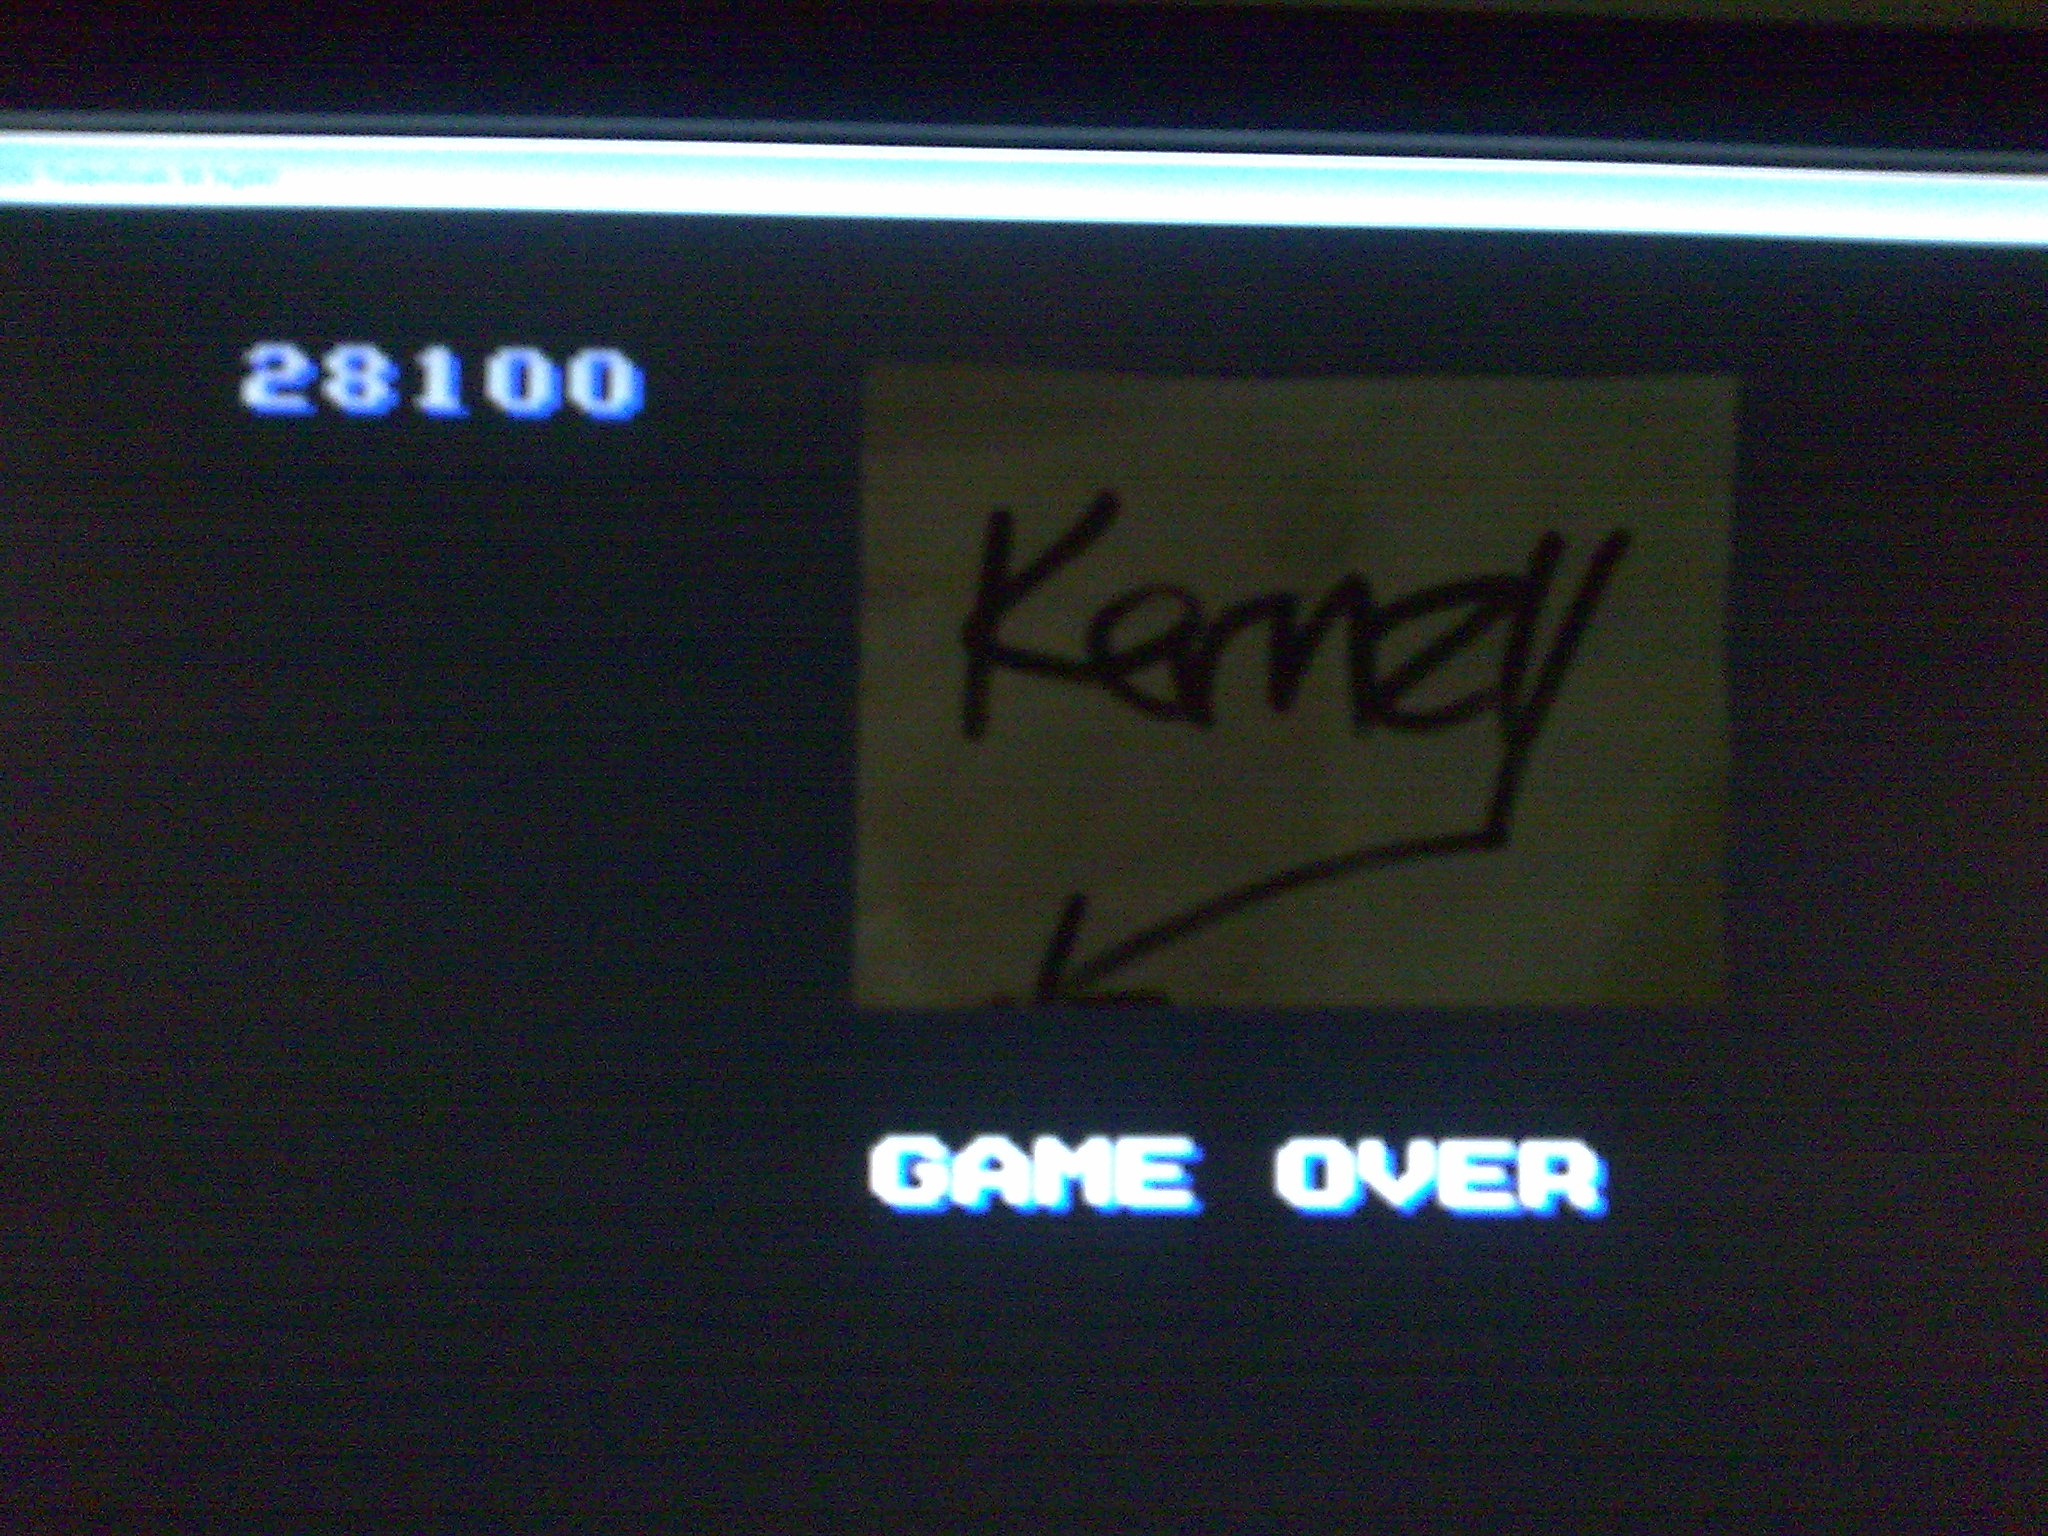 kernzy: Heavy Unit (TurboGrafx-16/PC Engine Emulated) 28,100 points on 2014-10-09 14:46:30